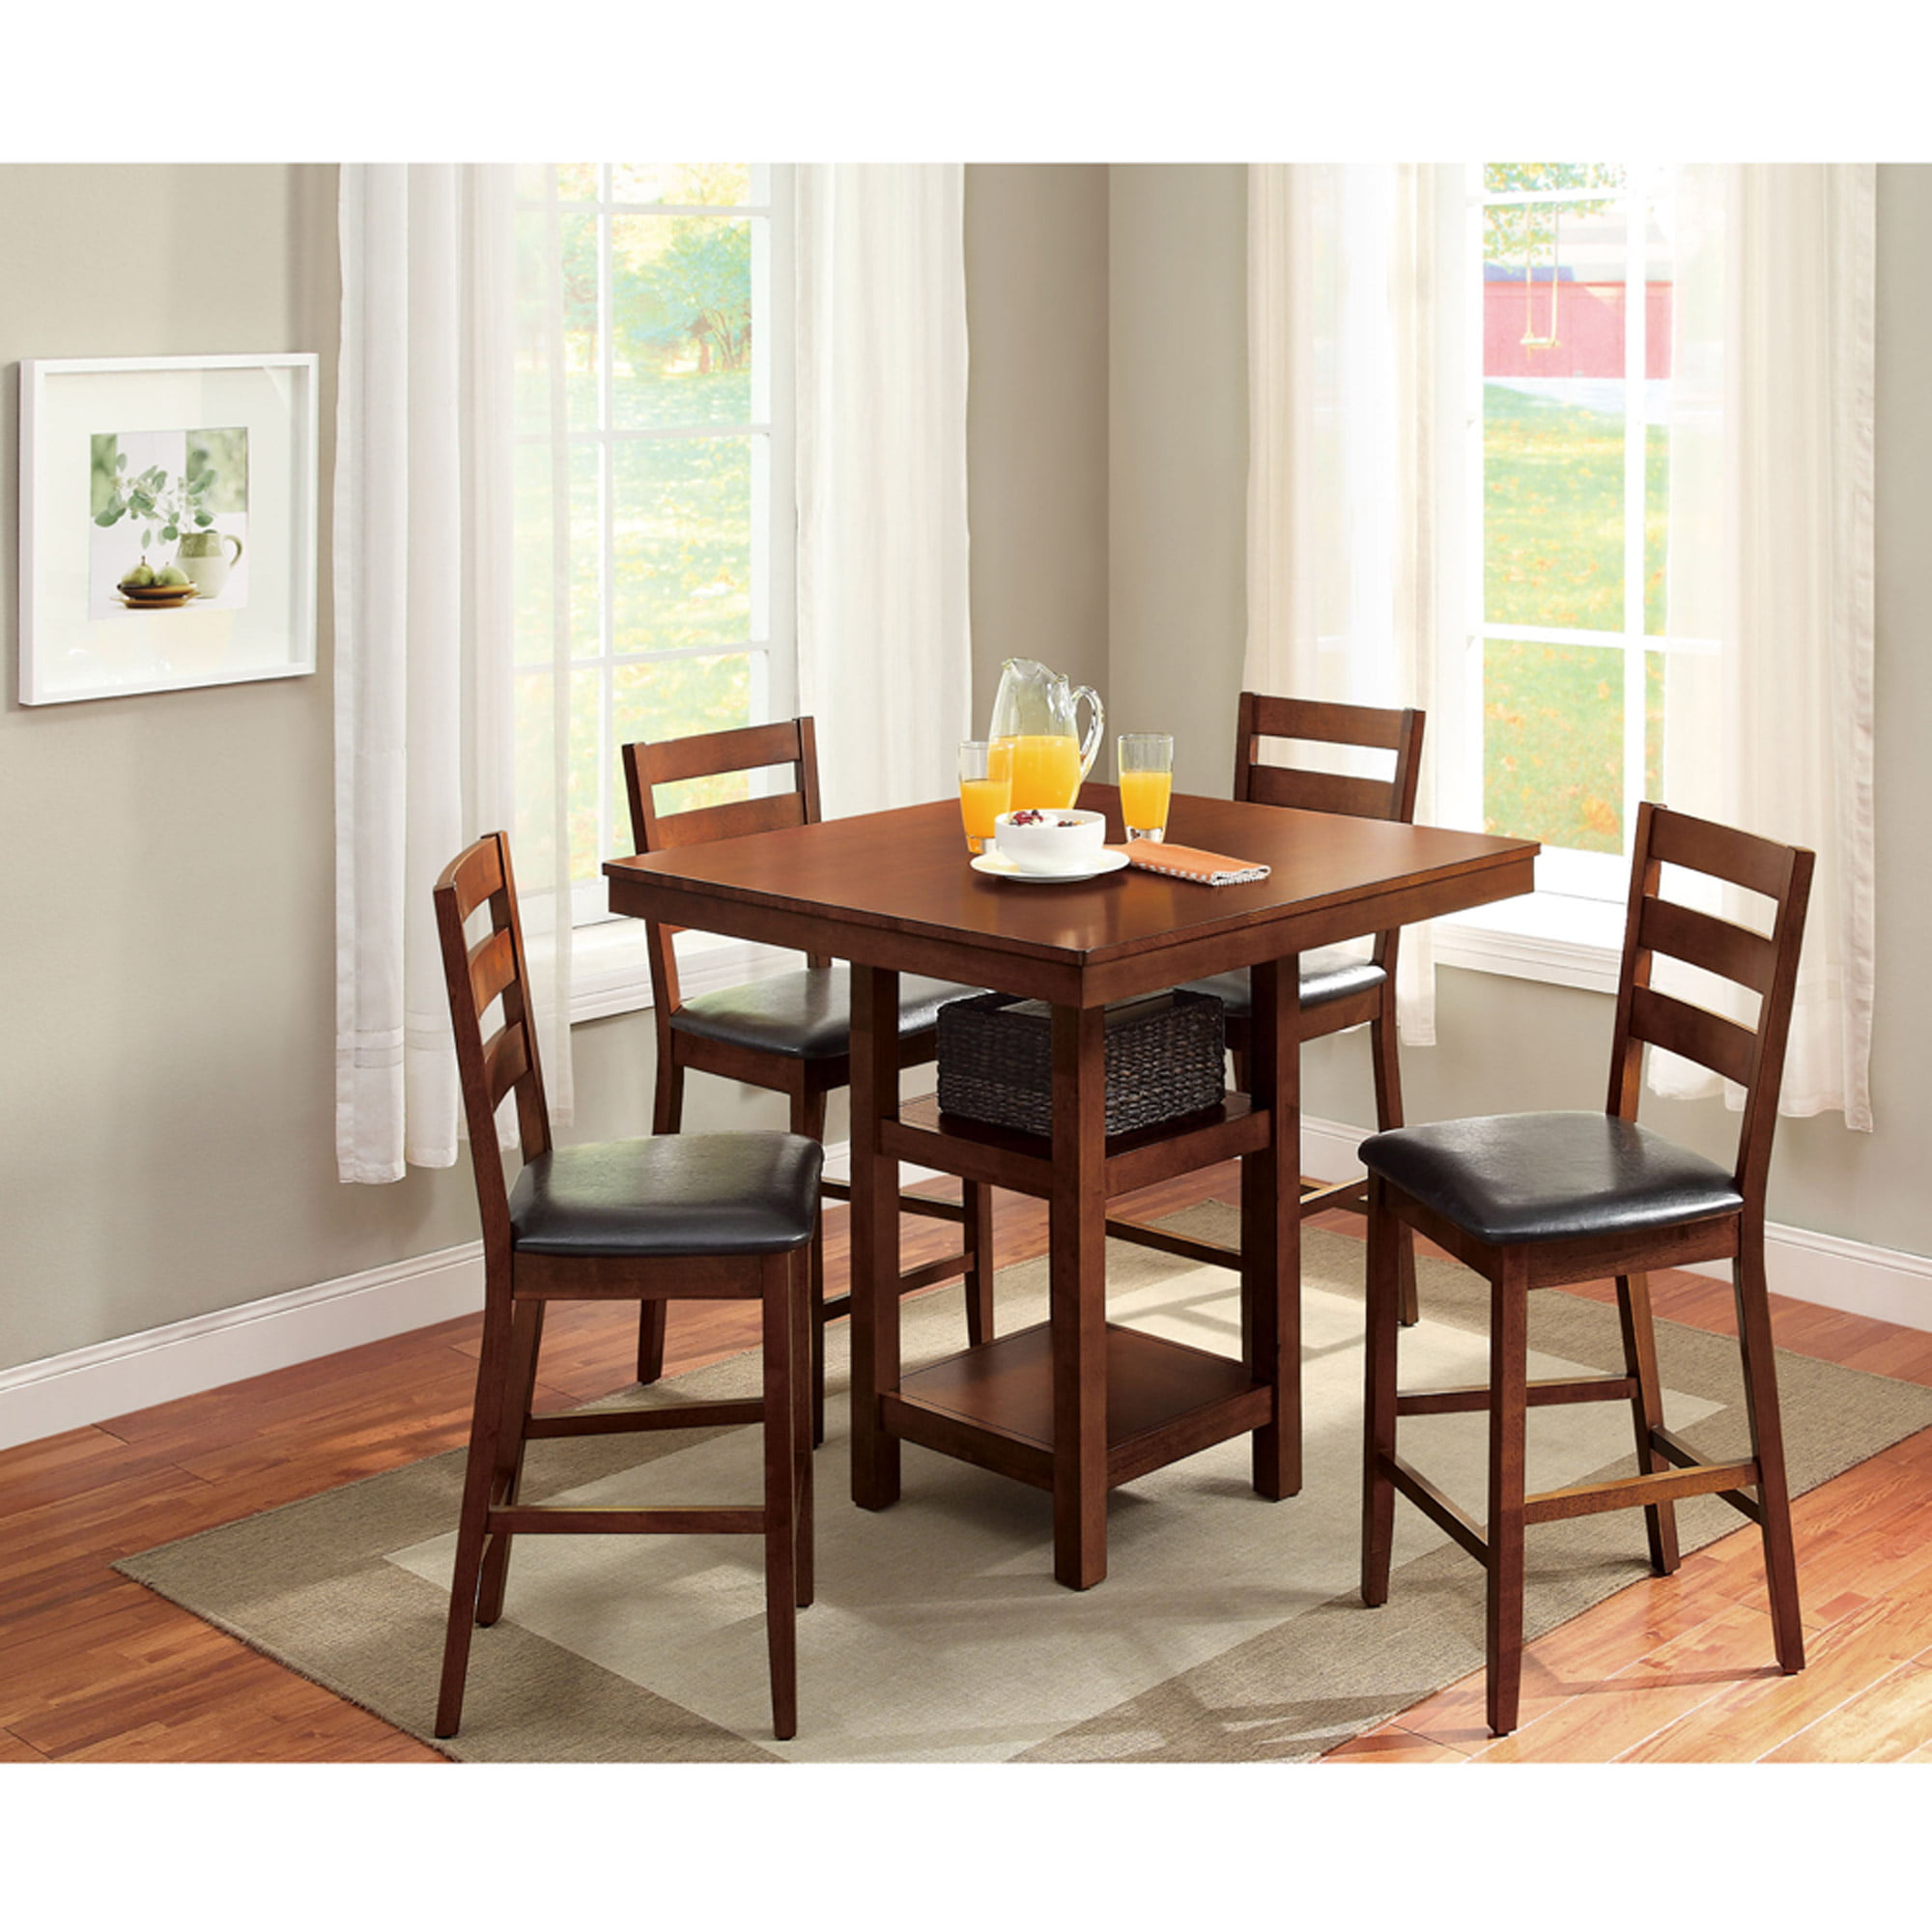 Dining Table Chairs Set Cheap better homes & gardens dalton park 5-piece counter height dining set